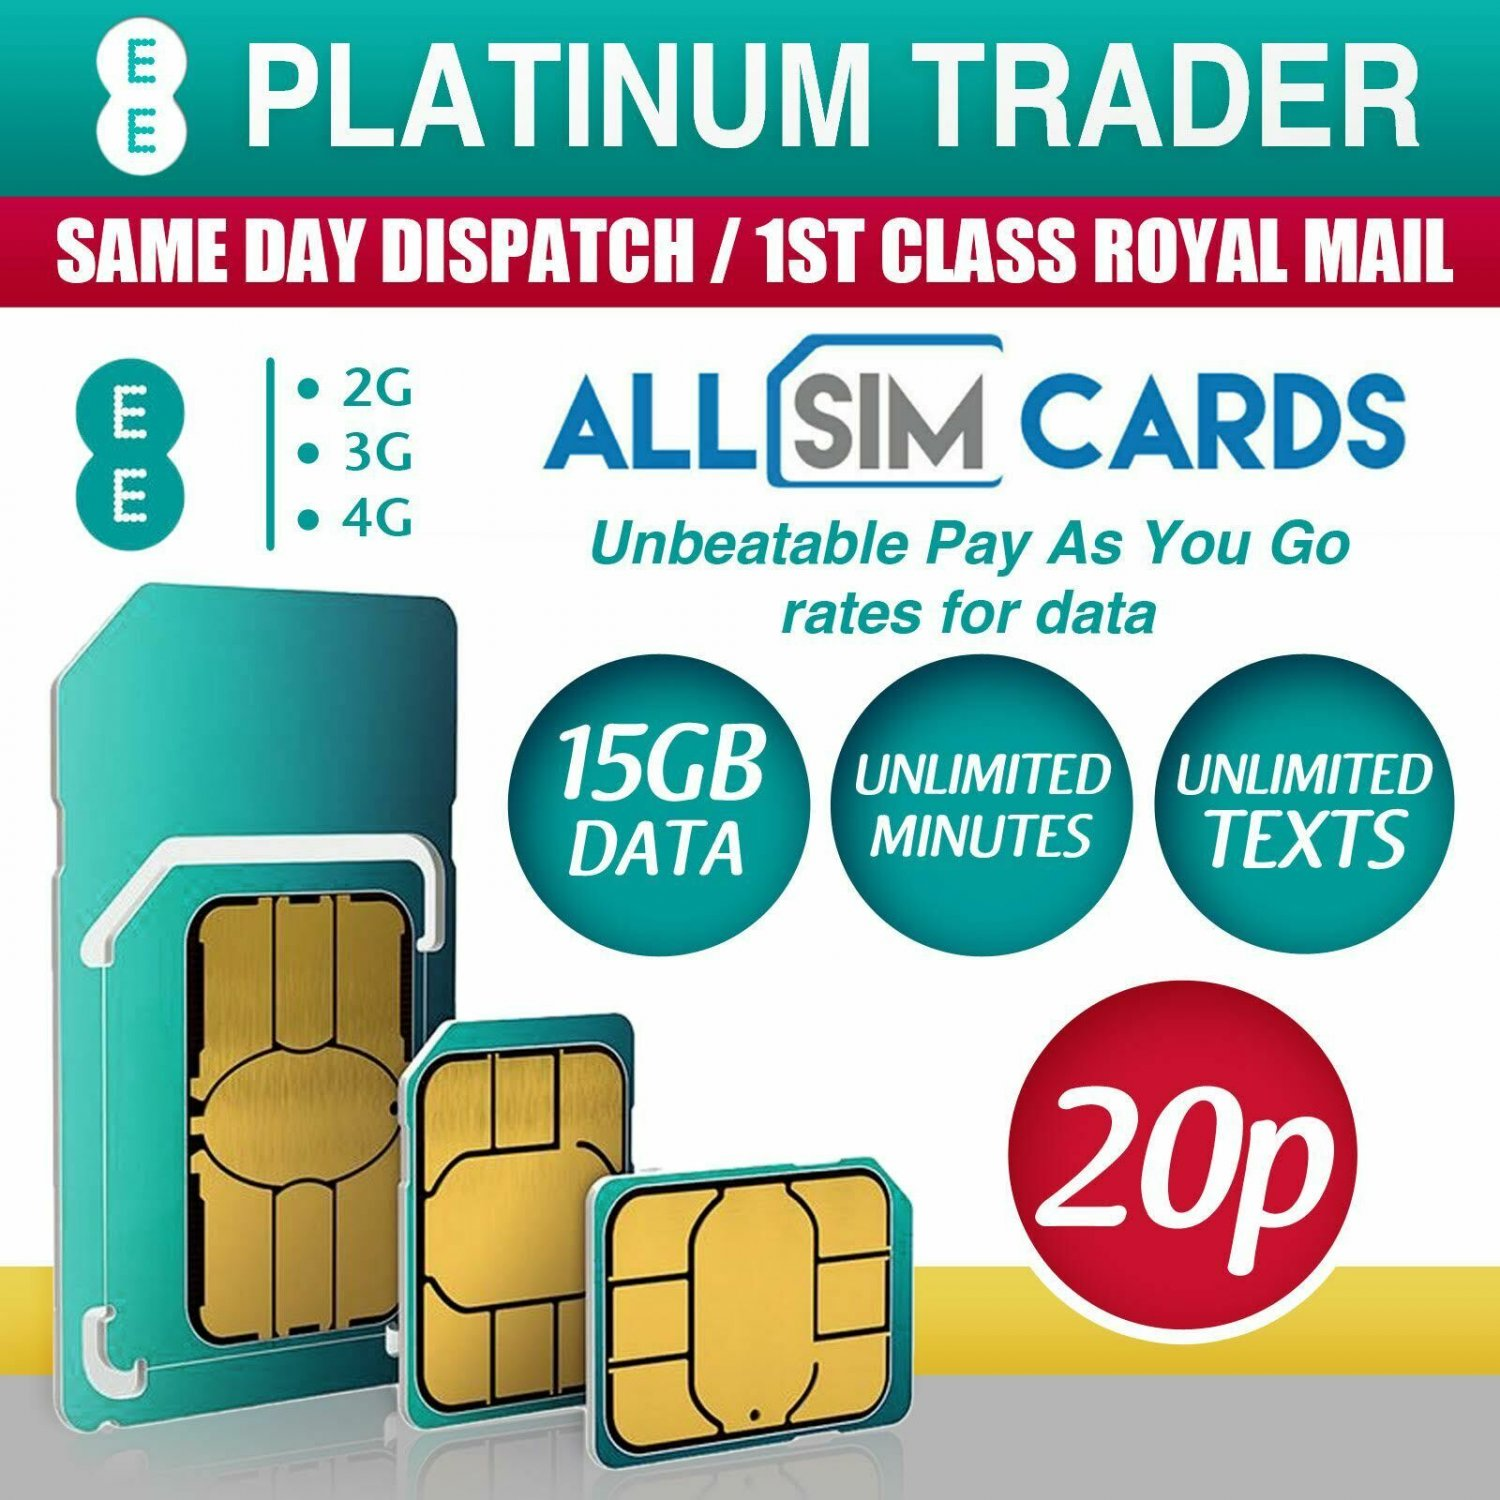 EE 4G £20 Data Pack Combi Sim PAYG 15GB Data Unlimited Texts & Mins ZERO CREDIT